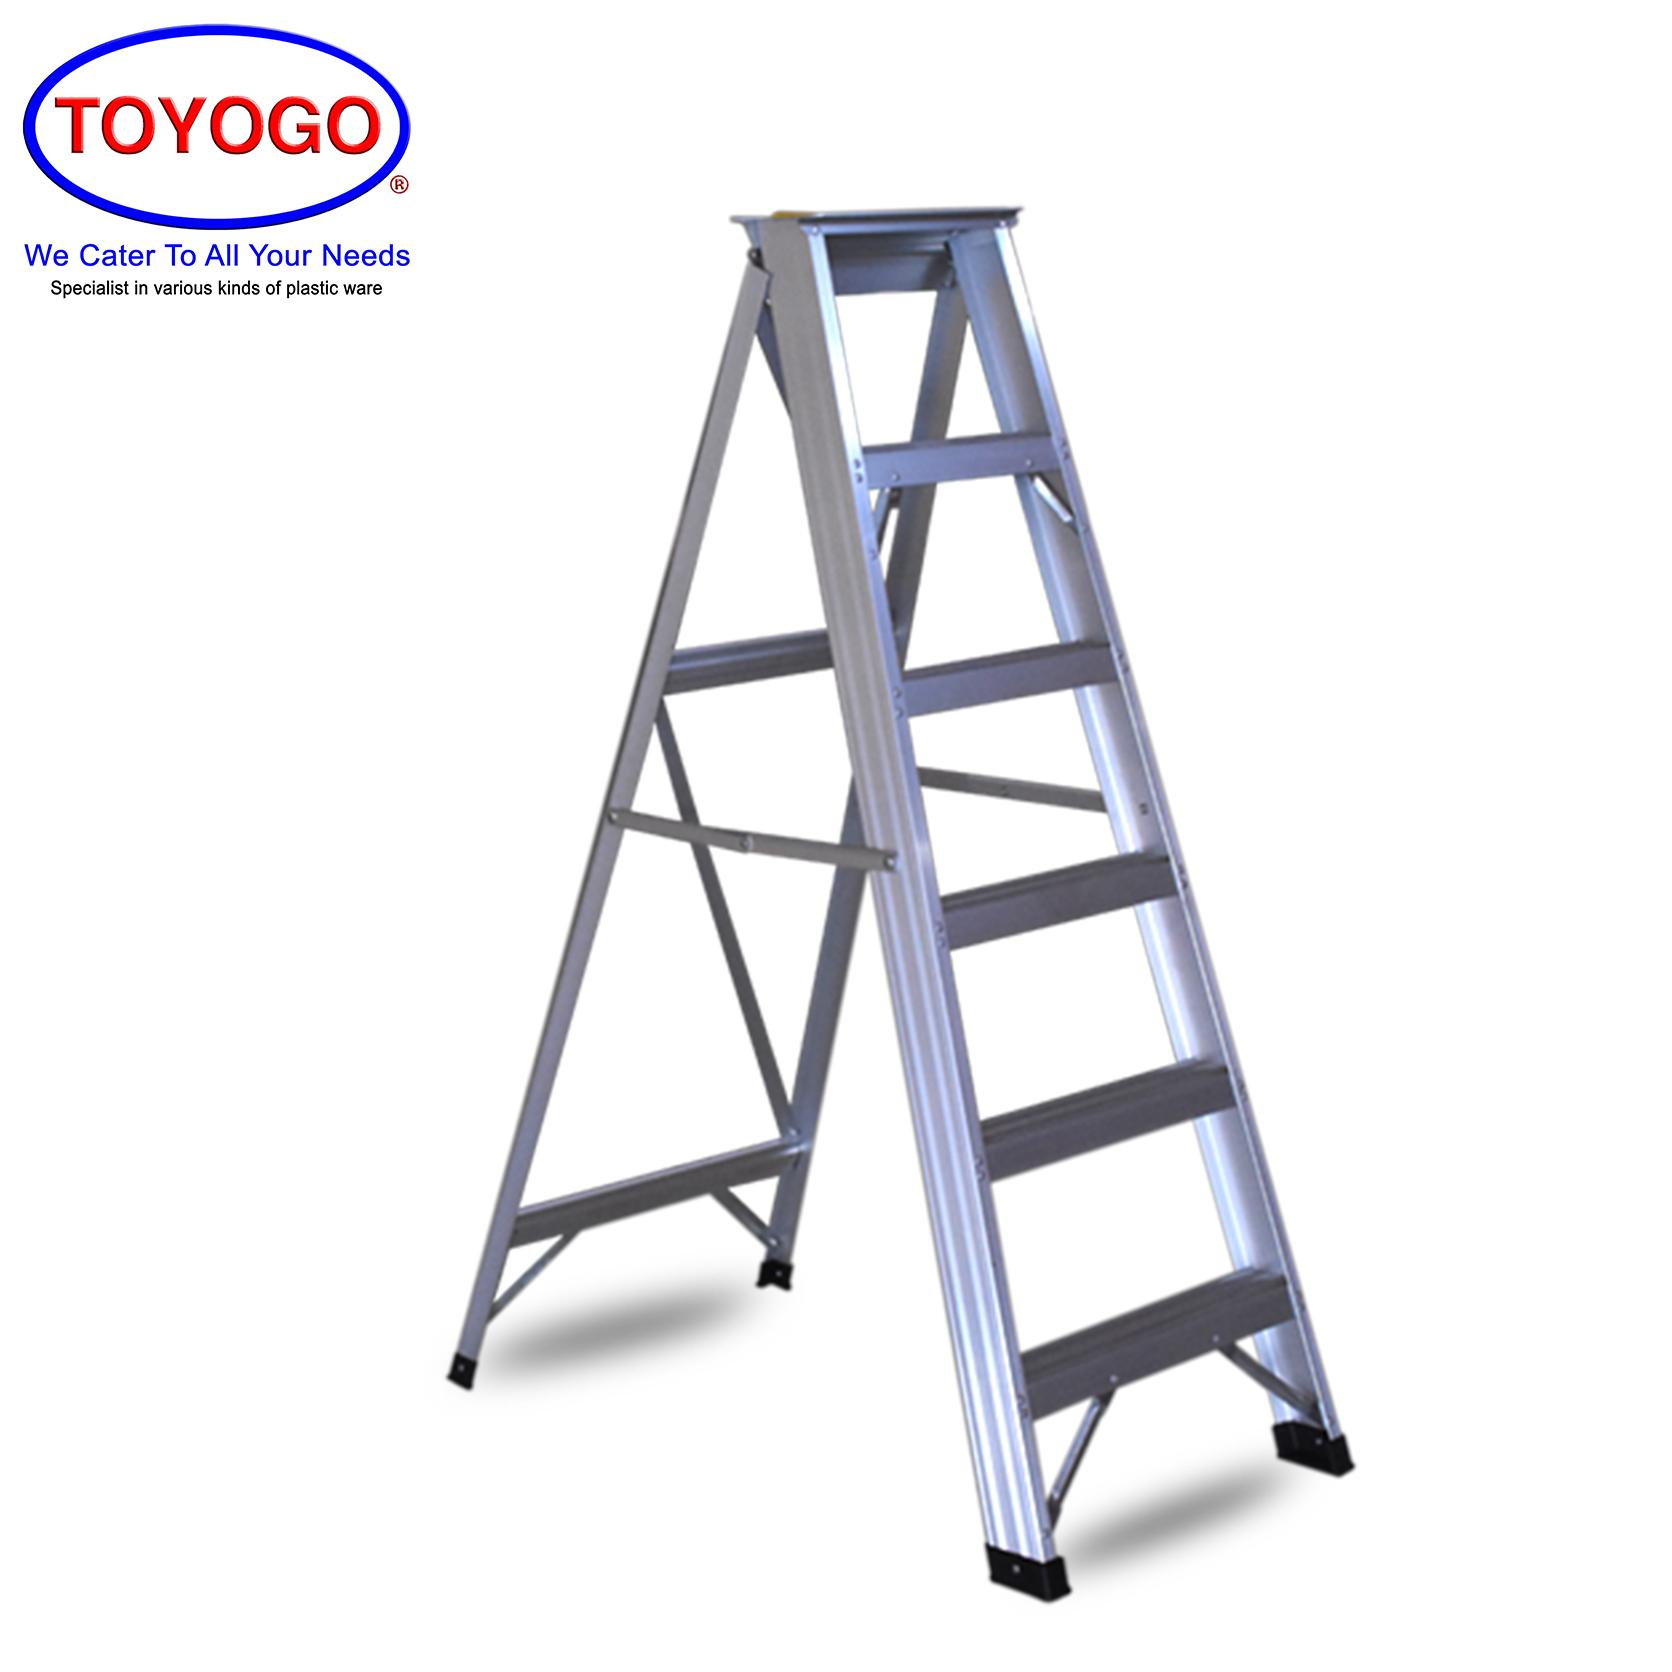 Toyogo Alum Ladder (6 Step) (HFH5546) W21